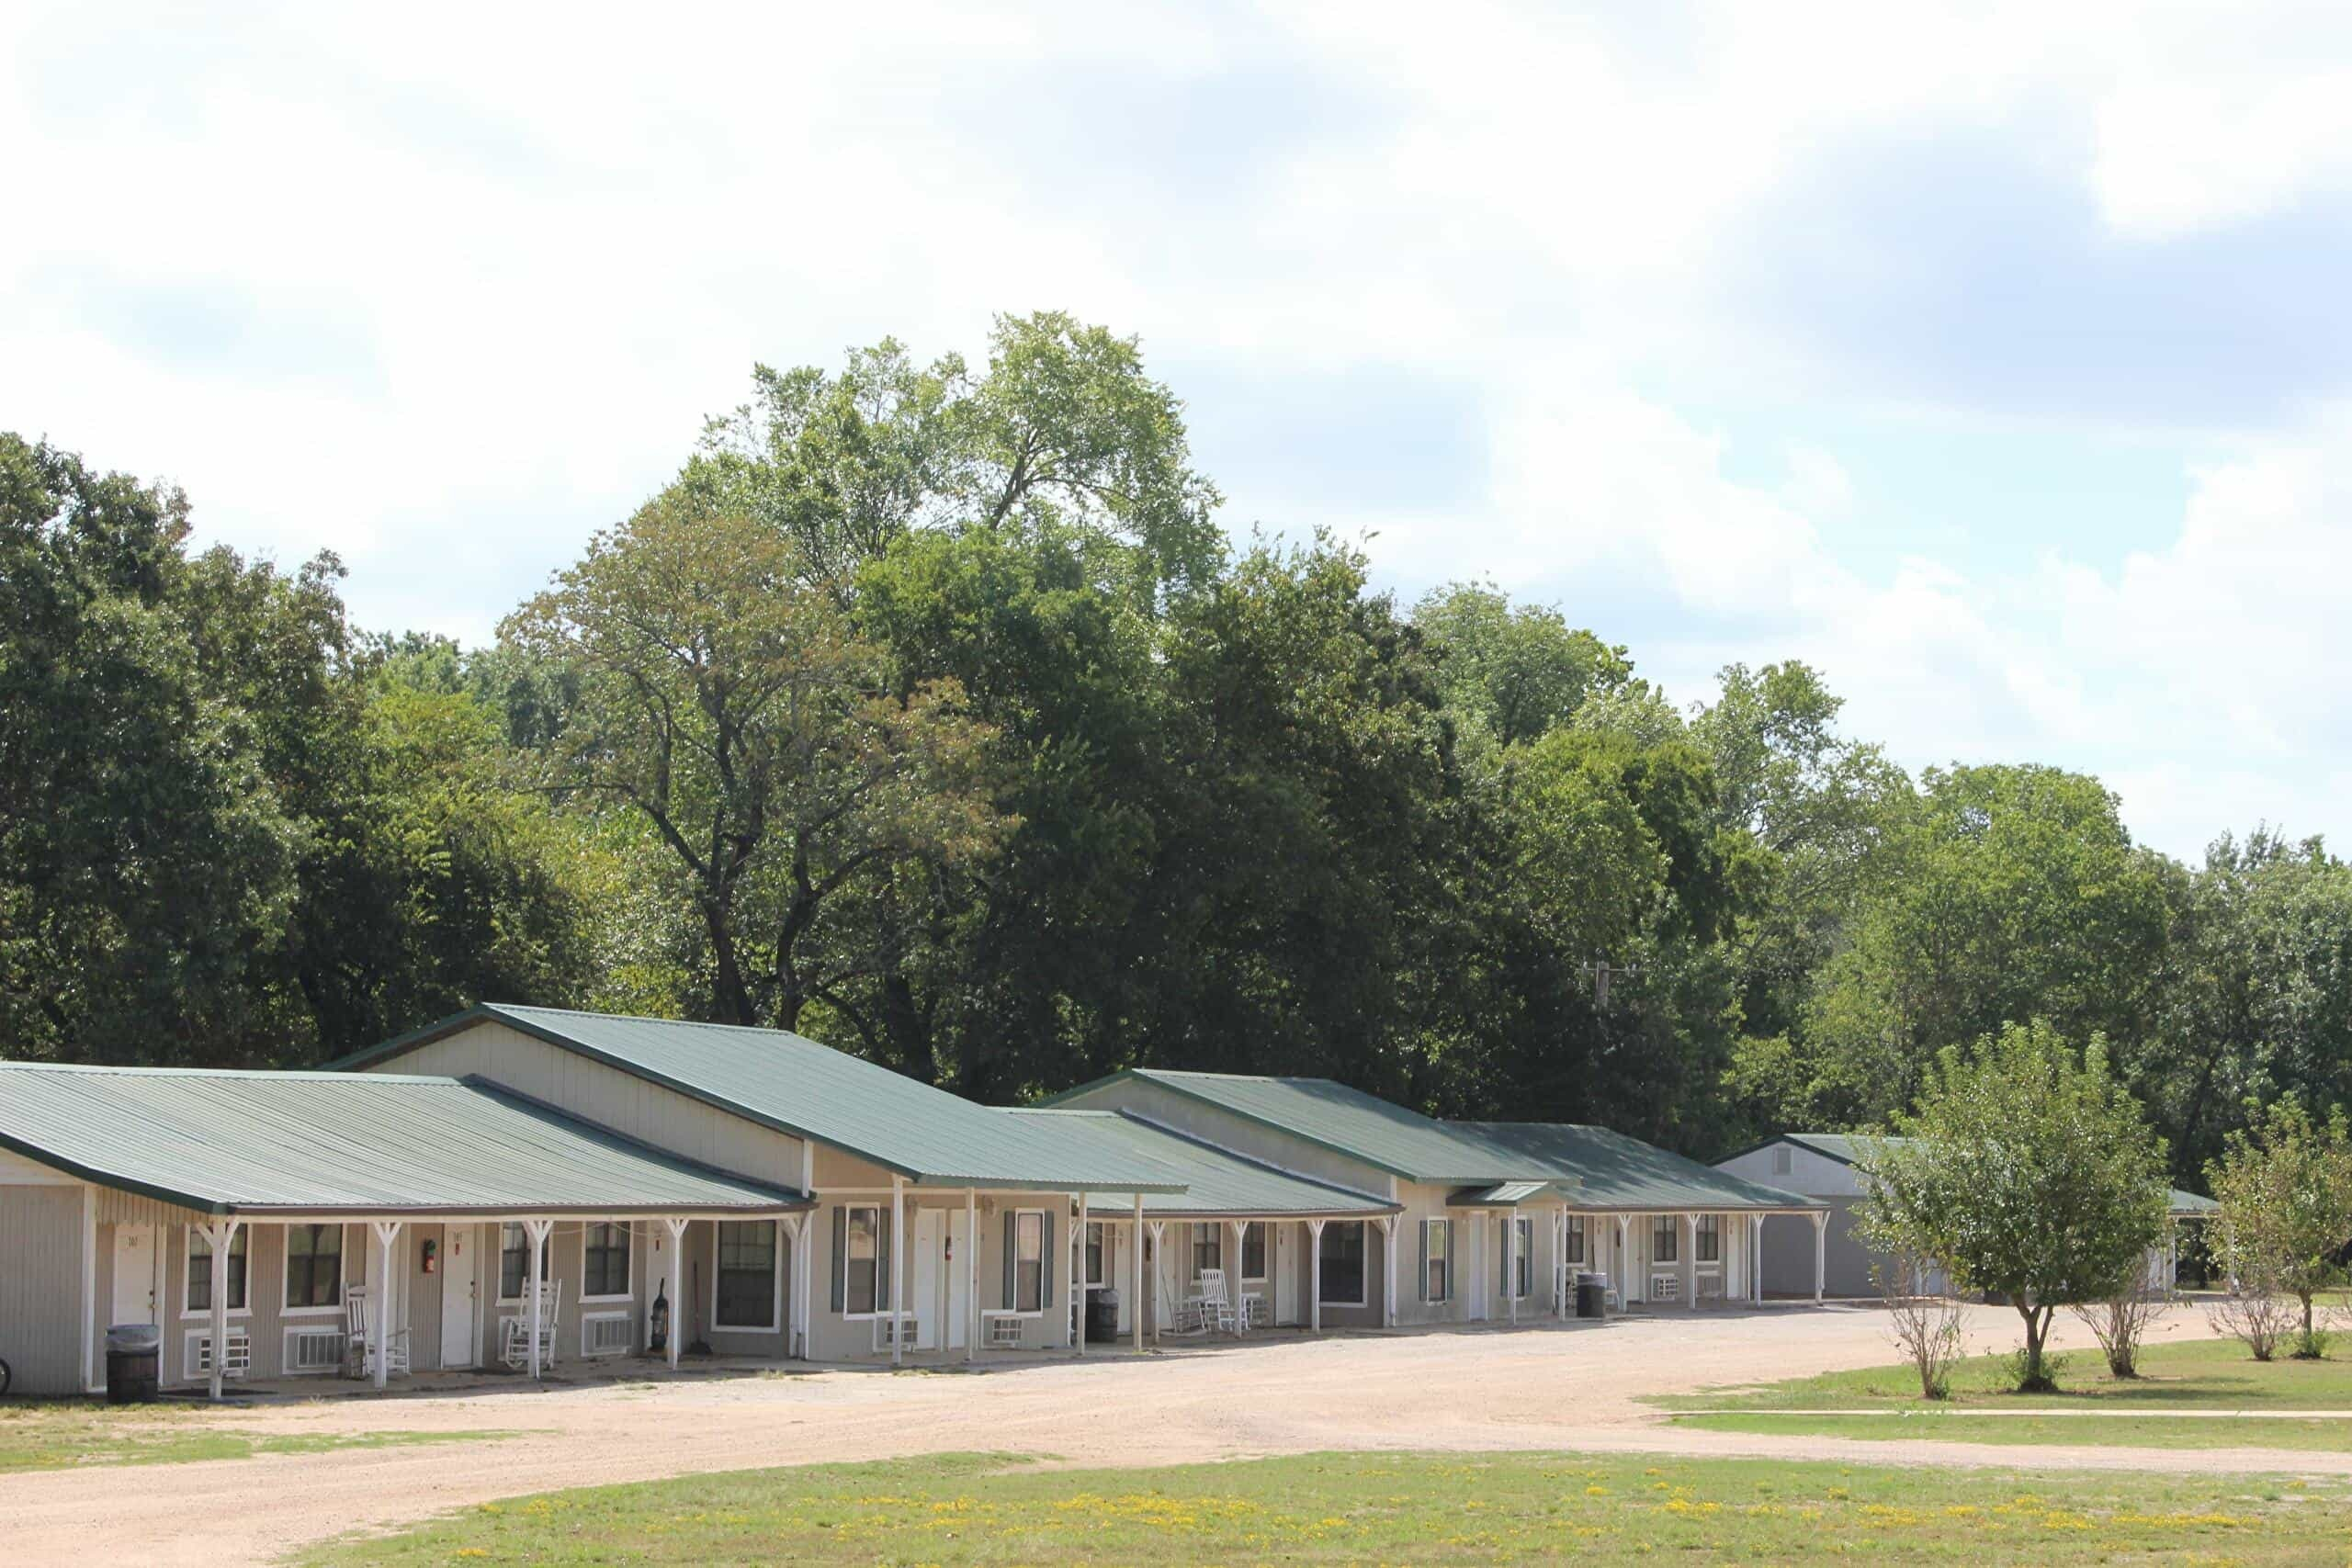 Lodging at Camp Bond in Tishomingo, Oklahoma